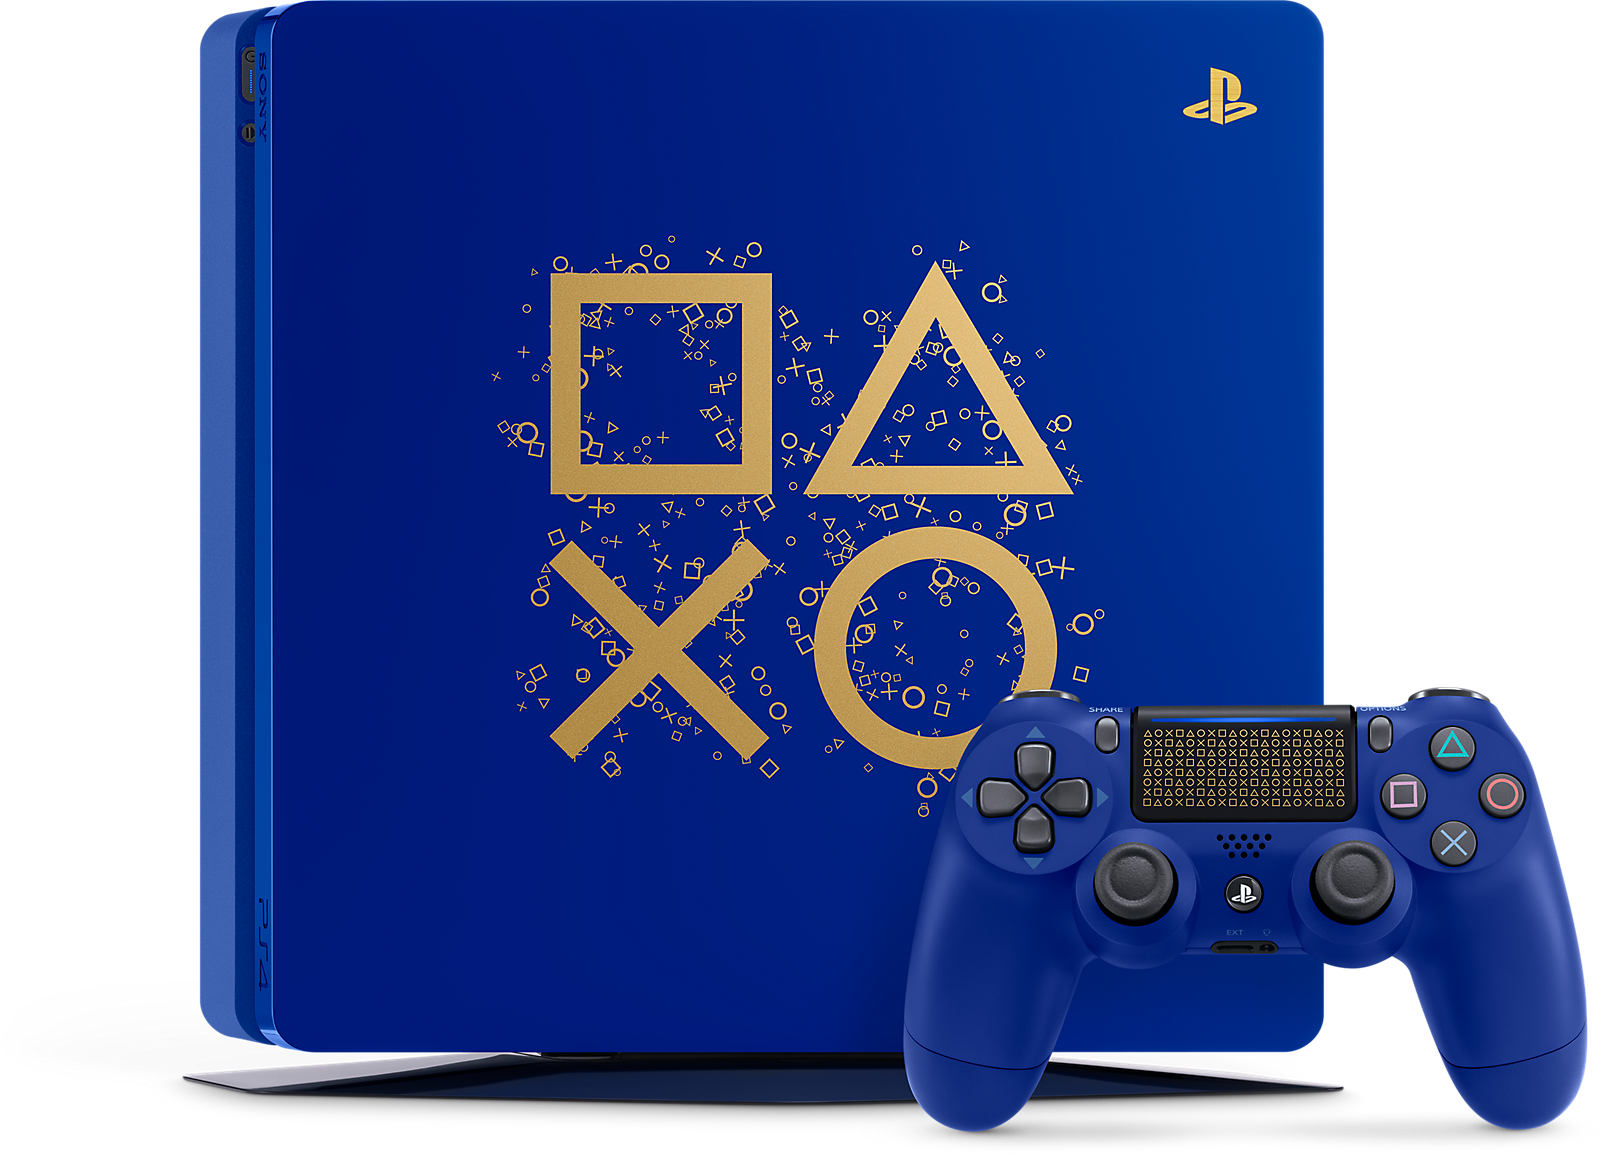 Blue Gold Playstation 4 Slim Playstation 4 Connect Games Sony Playstation